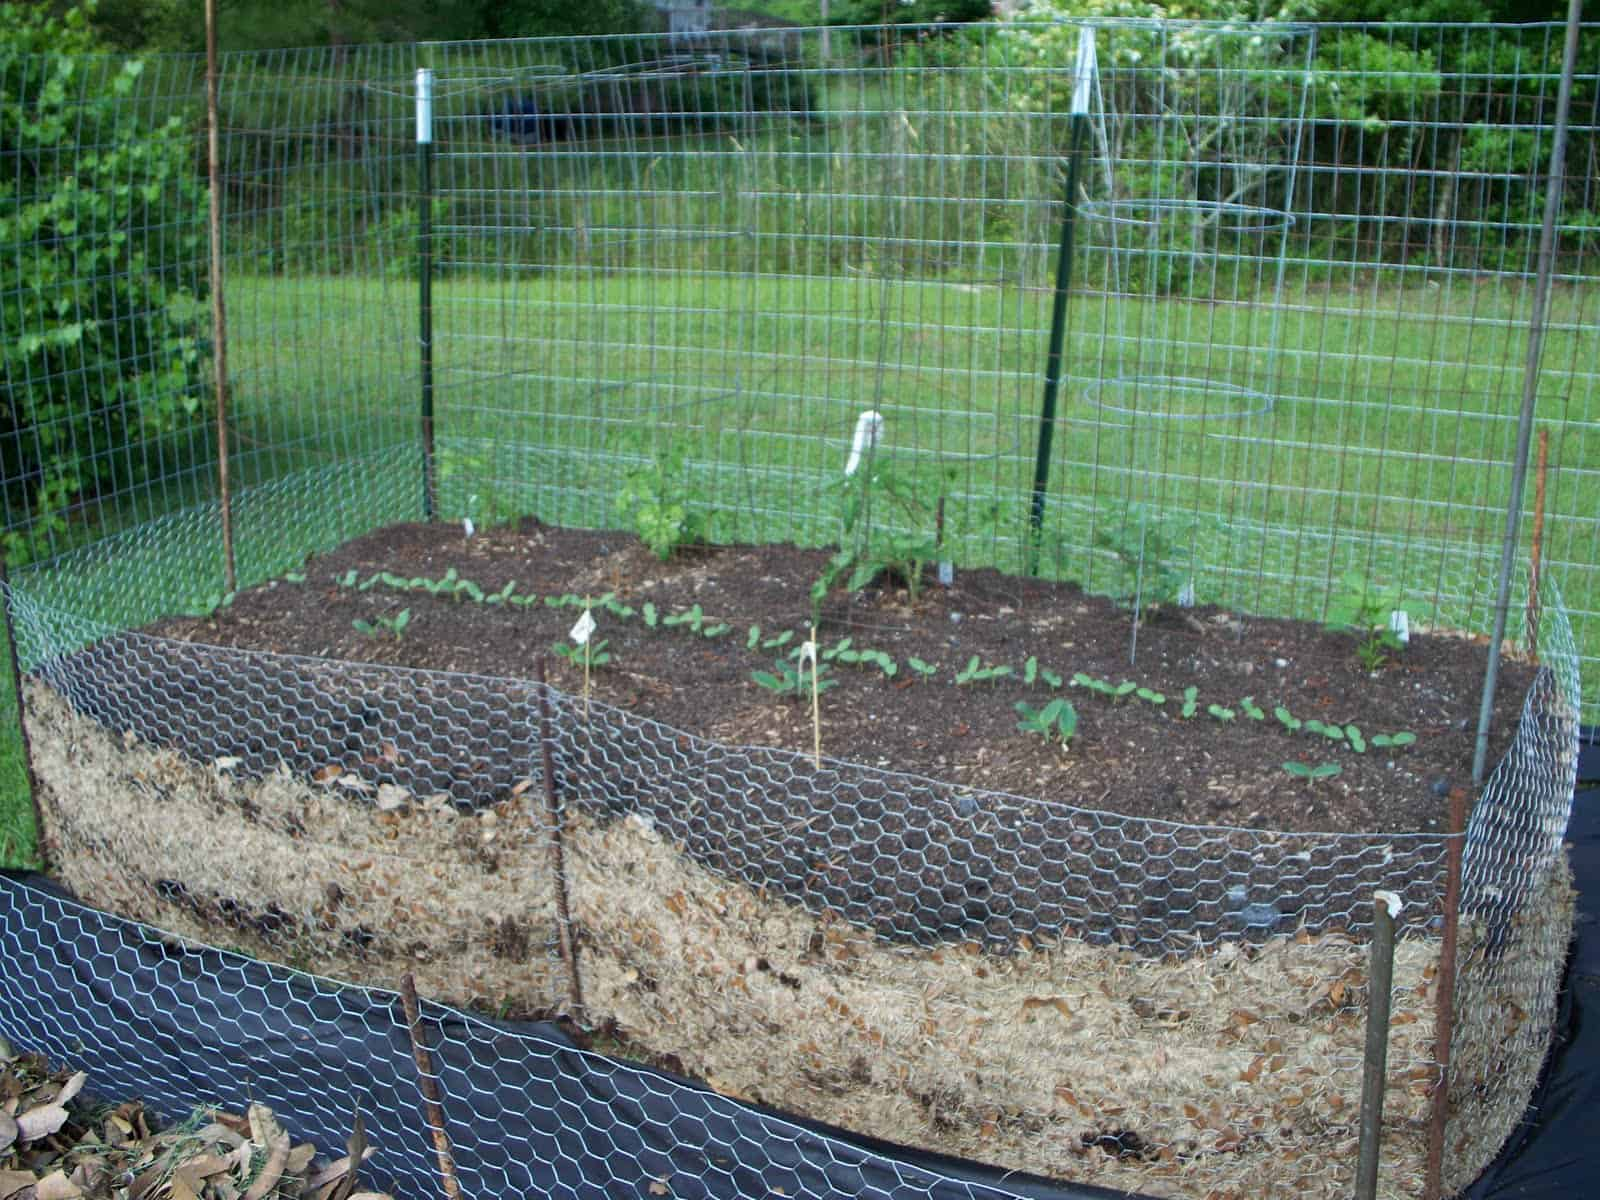 'Lasagna Gardening': Here's How To Grow Organic Vegetables Easily (Even Without A Garden!)